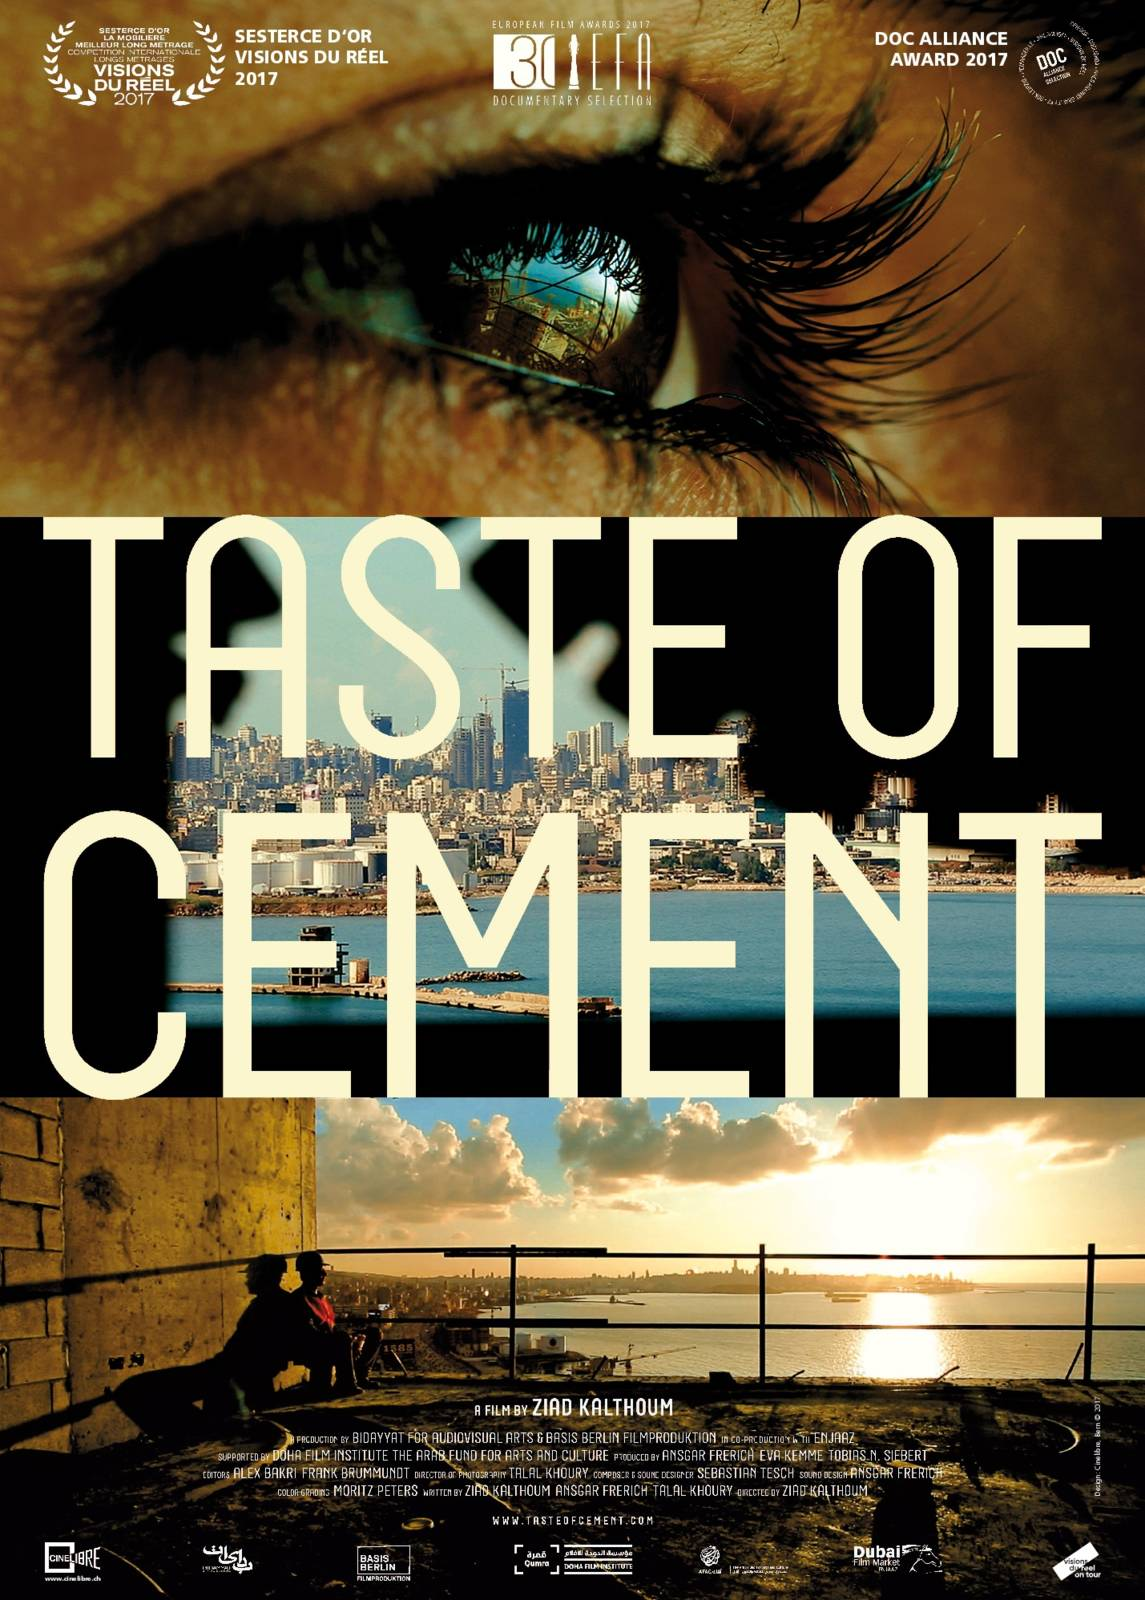 - TASTE OF CEMENT, 2017 (Germany, Lebanon)A portrait of workers in exile. An empathetic encounter with people who have lost their past and their future, locked in the recurring present. The director creates an essay documentary of Syrian construction workers building new skyscrapers in Beirut on the ruins caused by the Lebanese civil war. At the same time their own houses are being bombed in Syria. Mute and imprisoned in the cement underground, they must endure until the new day arrives where the hammering and welding drowns out their nightmares.Director: Ziad KalthoumLength: 1h 15minWhere and when: The Lexi Cinema, Monday 3 December, 6:30pm